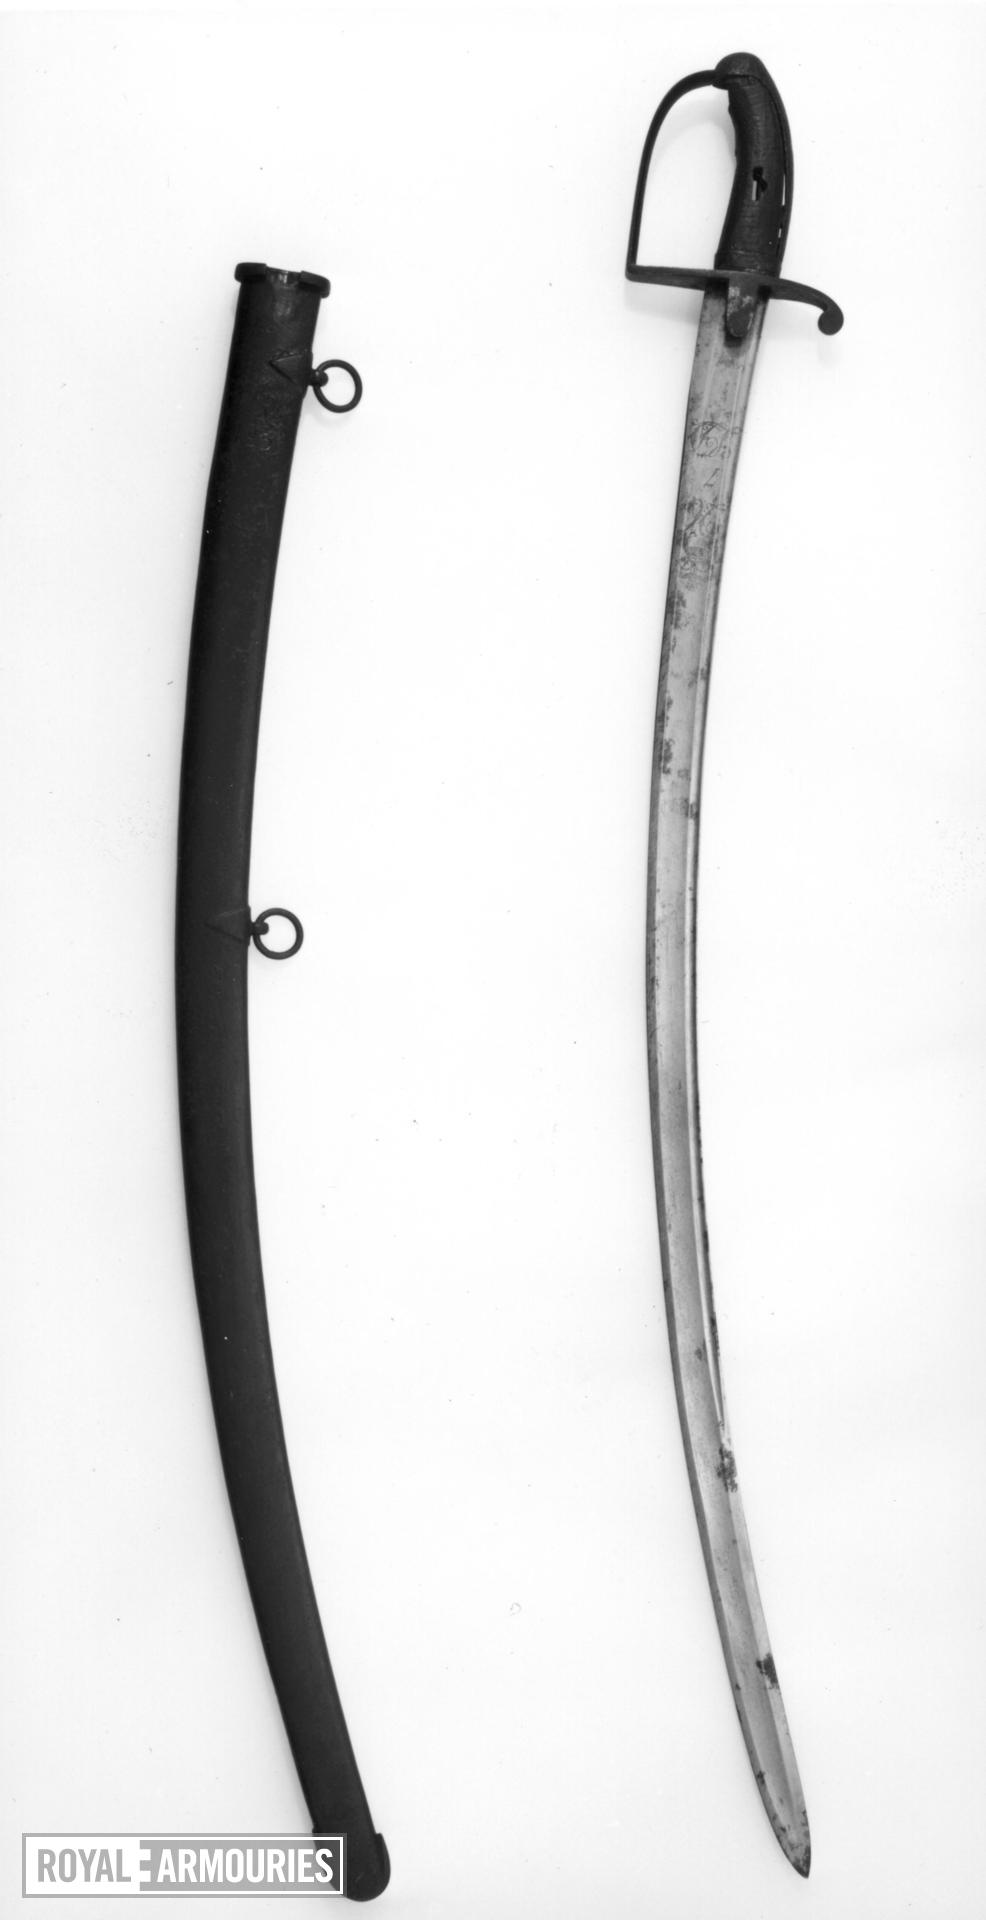 Sword and Scabbard Cavalry sword & scabbard. 7LD Woolley.